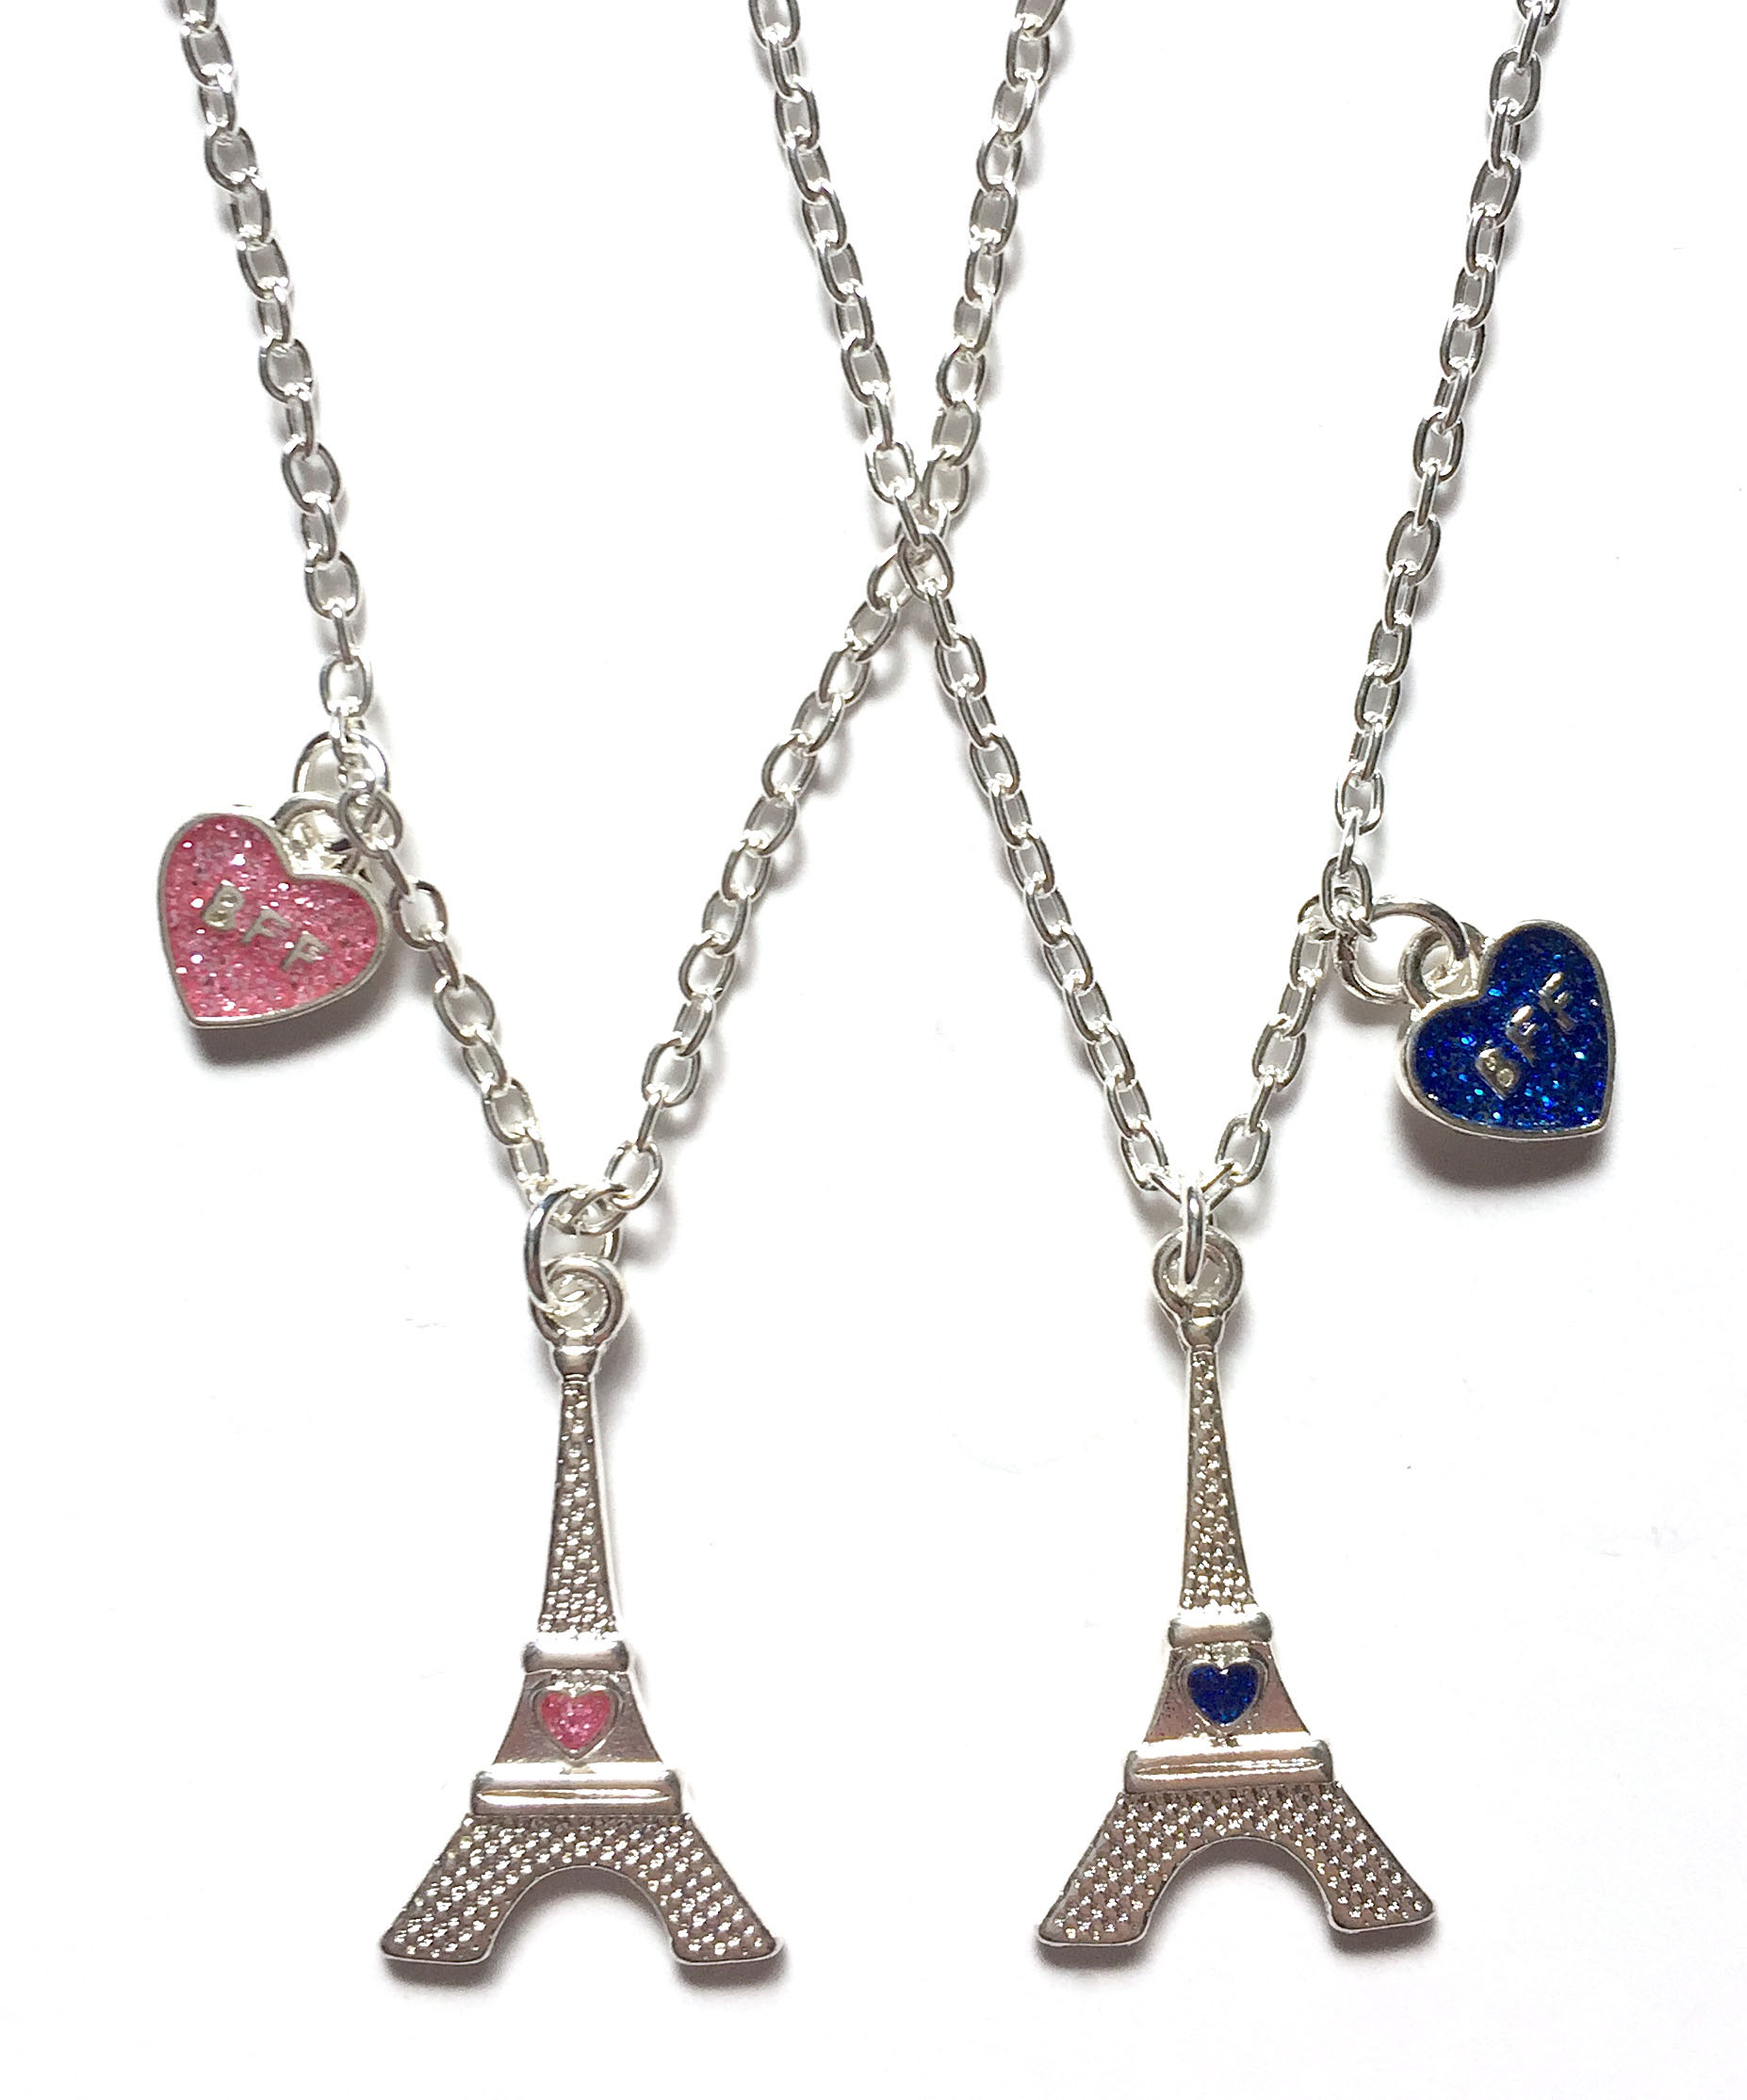 Eiffel Tower BF Necklaces